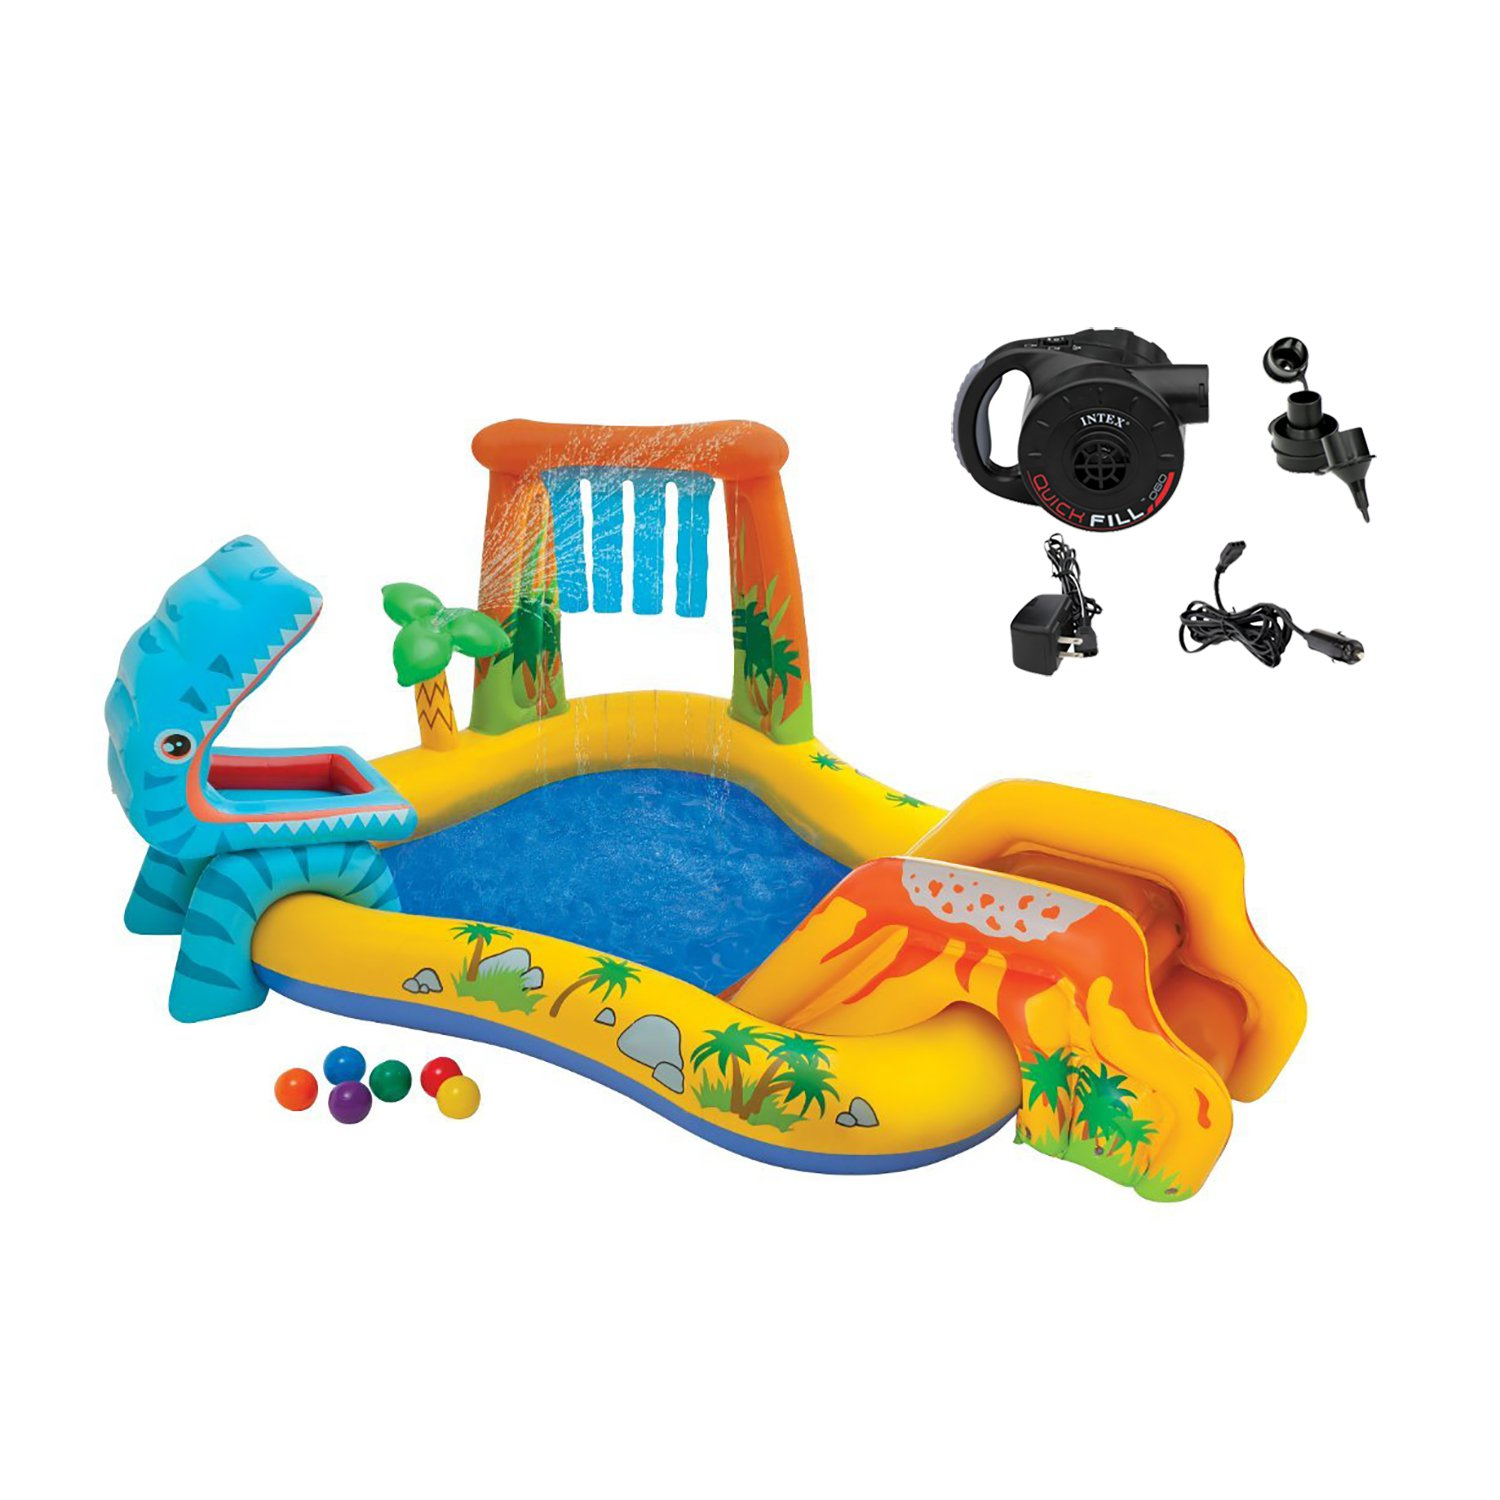 Intex Kids Inflatable Dinosaur Swimming Pool Play Center w/ Quick Fill Air Pump